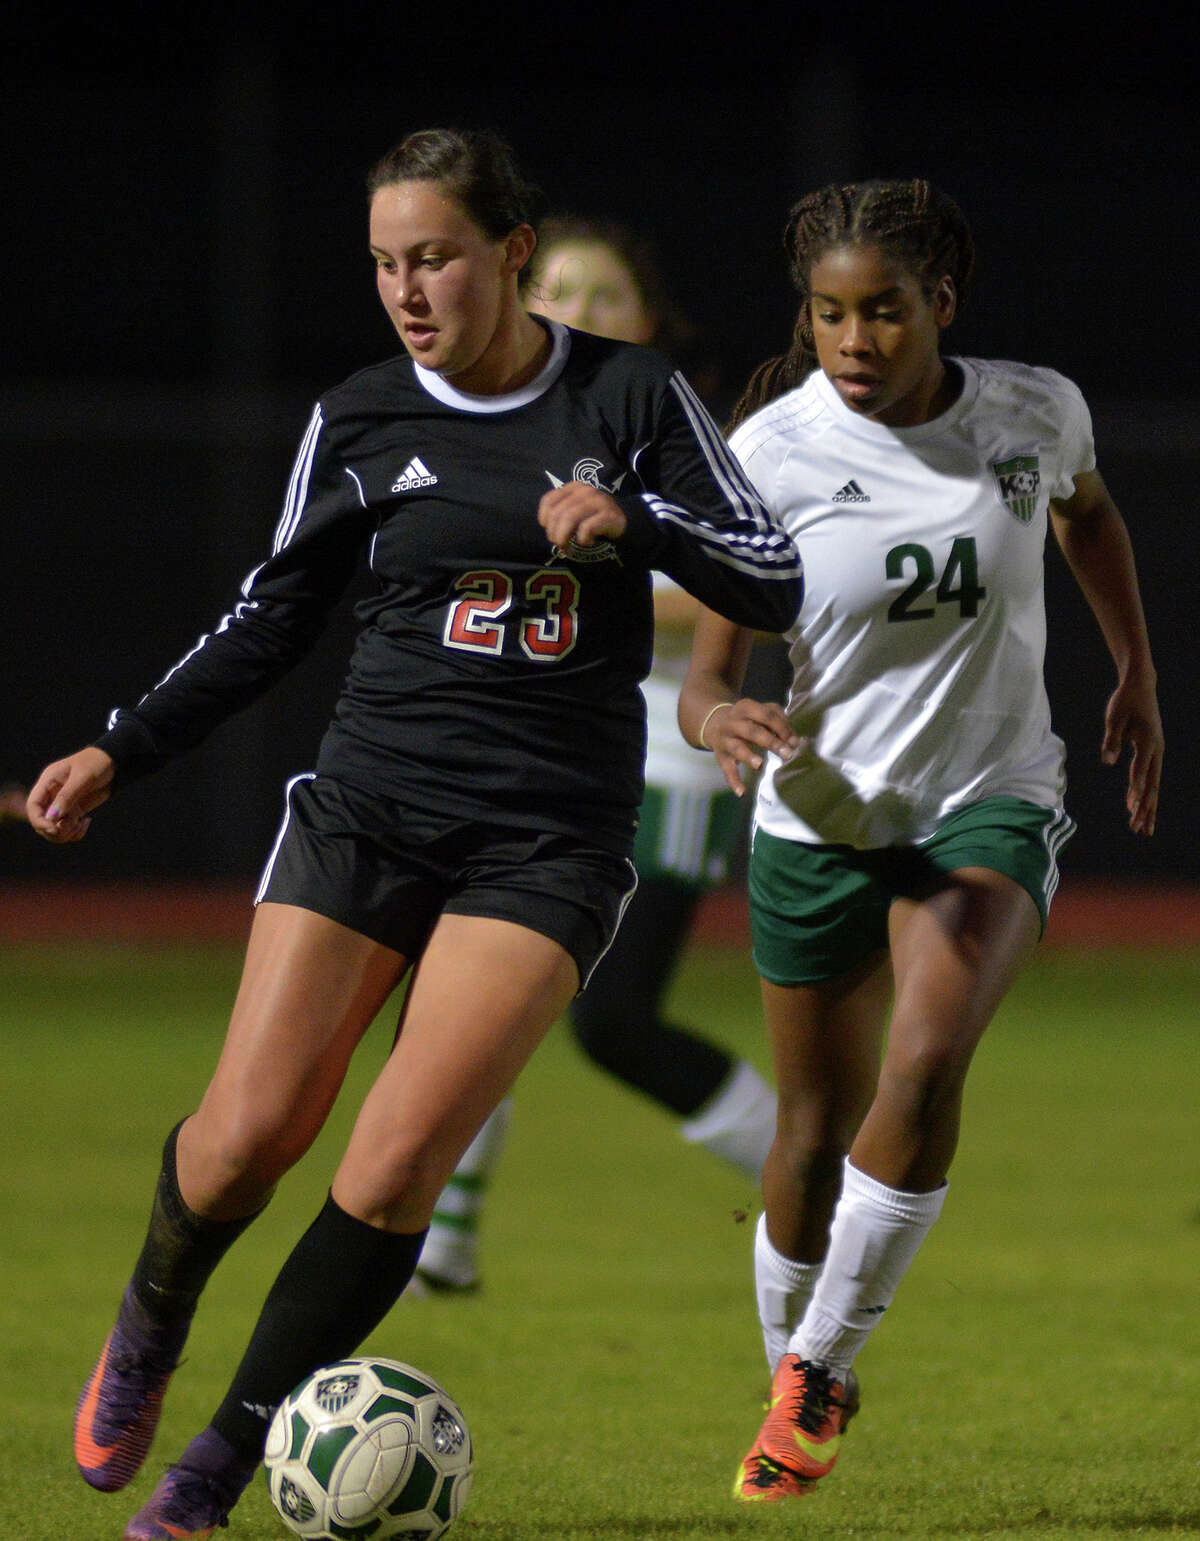 Porter's Kimberly Rodriguez (23) controls the ball against Kingwood Park junior midfielder Mia Marshall (24) during their game at Kingwood Park High School on Jan. 27, 2017. (Photo by Jerry Baker/Freelance)